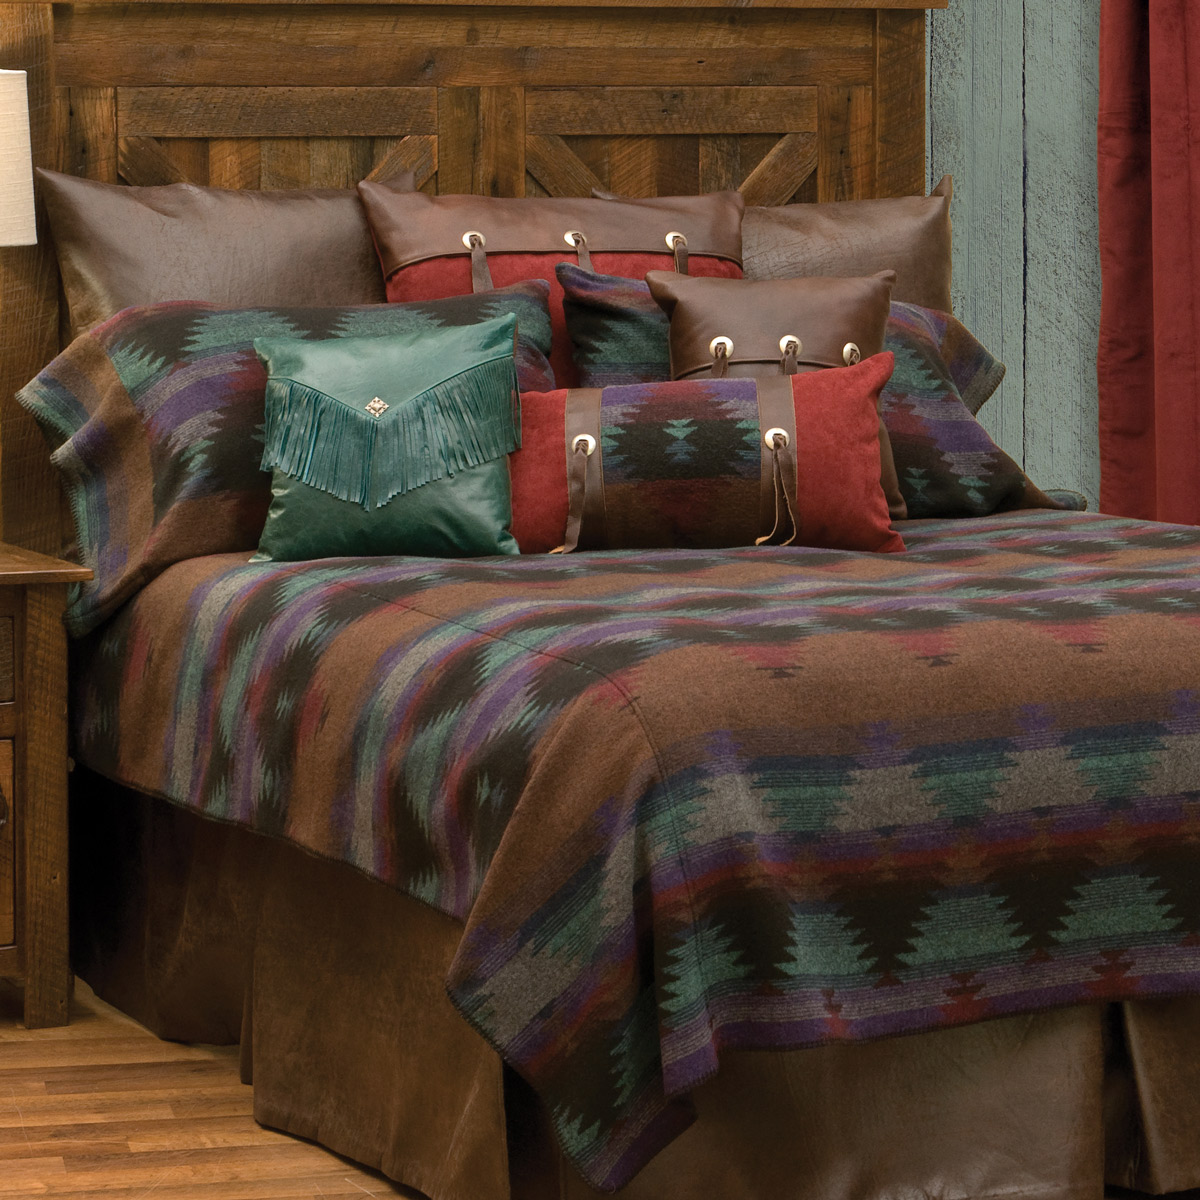 Painted Desert III Bedspread - Full/Queen